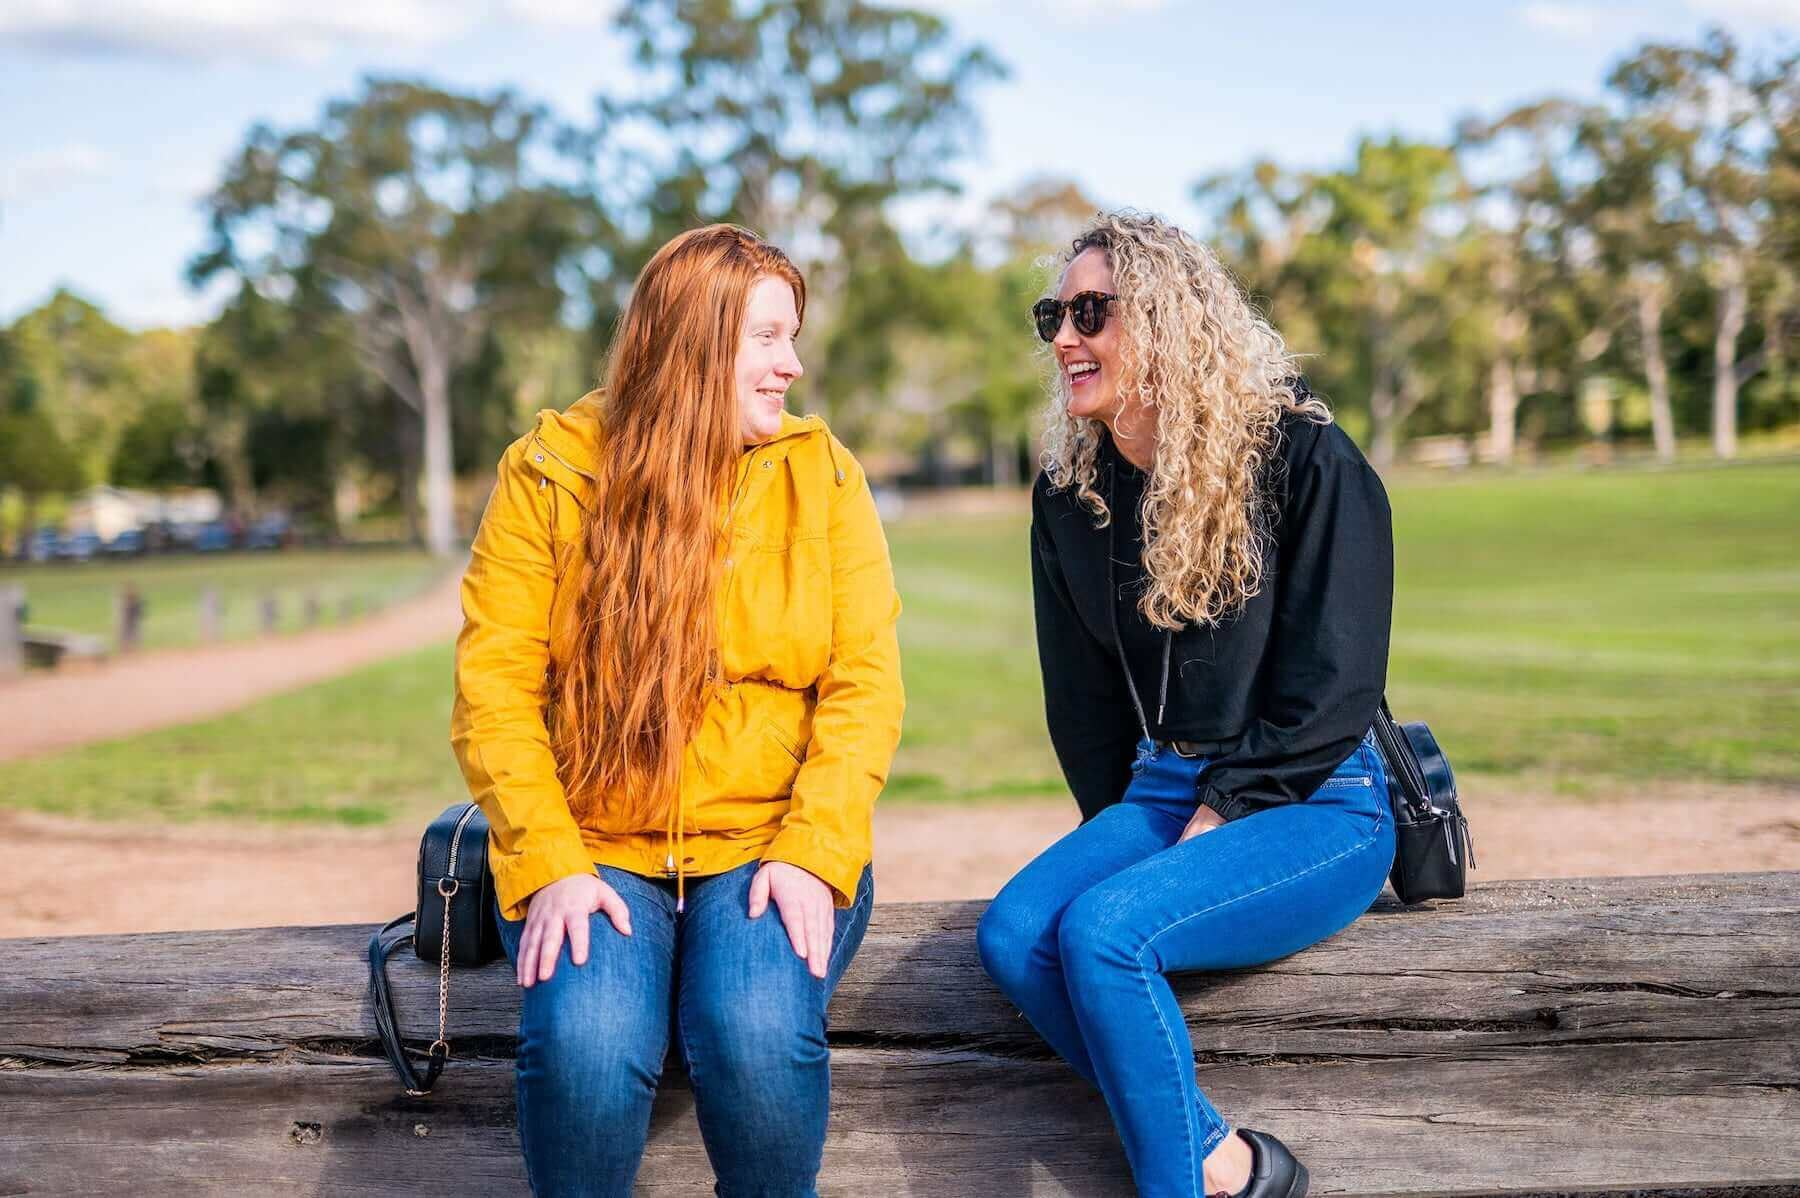 Two women laughing and talking whilst sitting in a park and looking at each other.